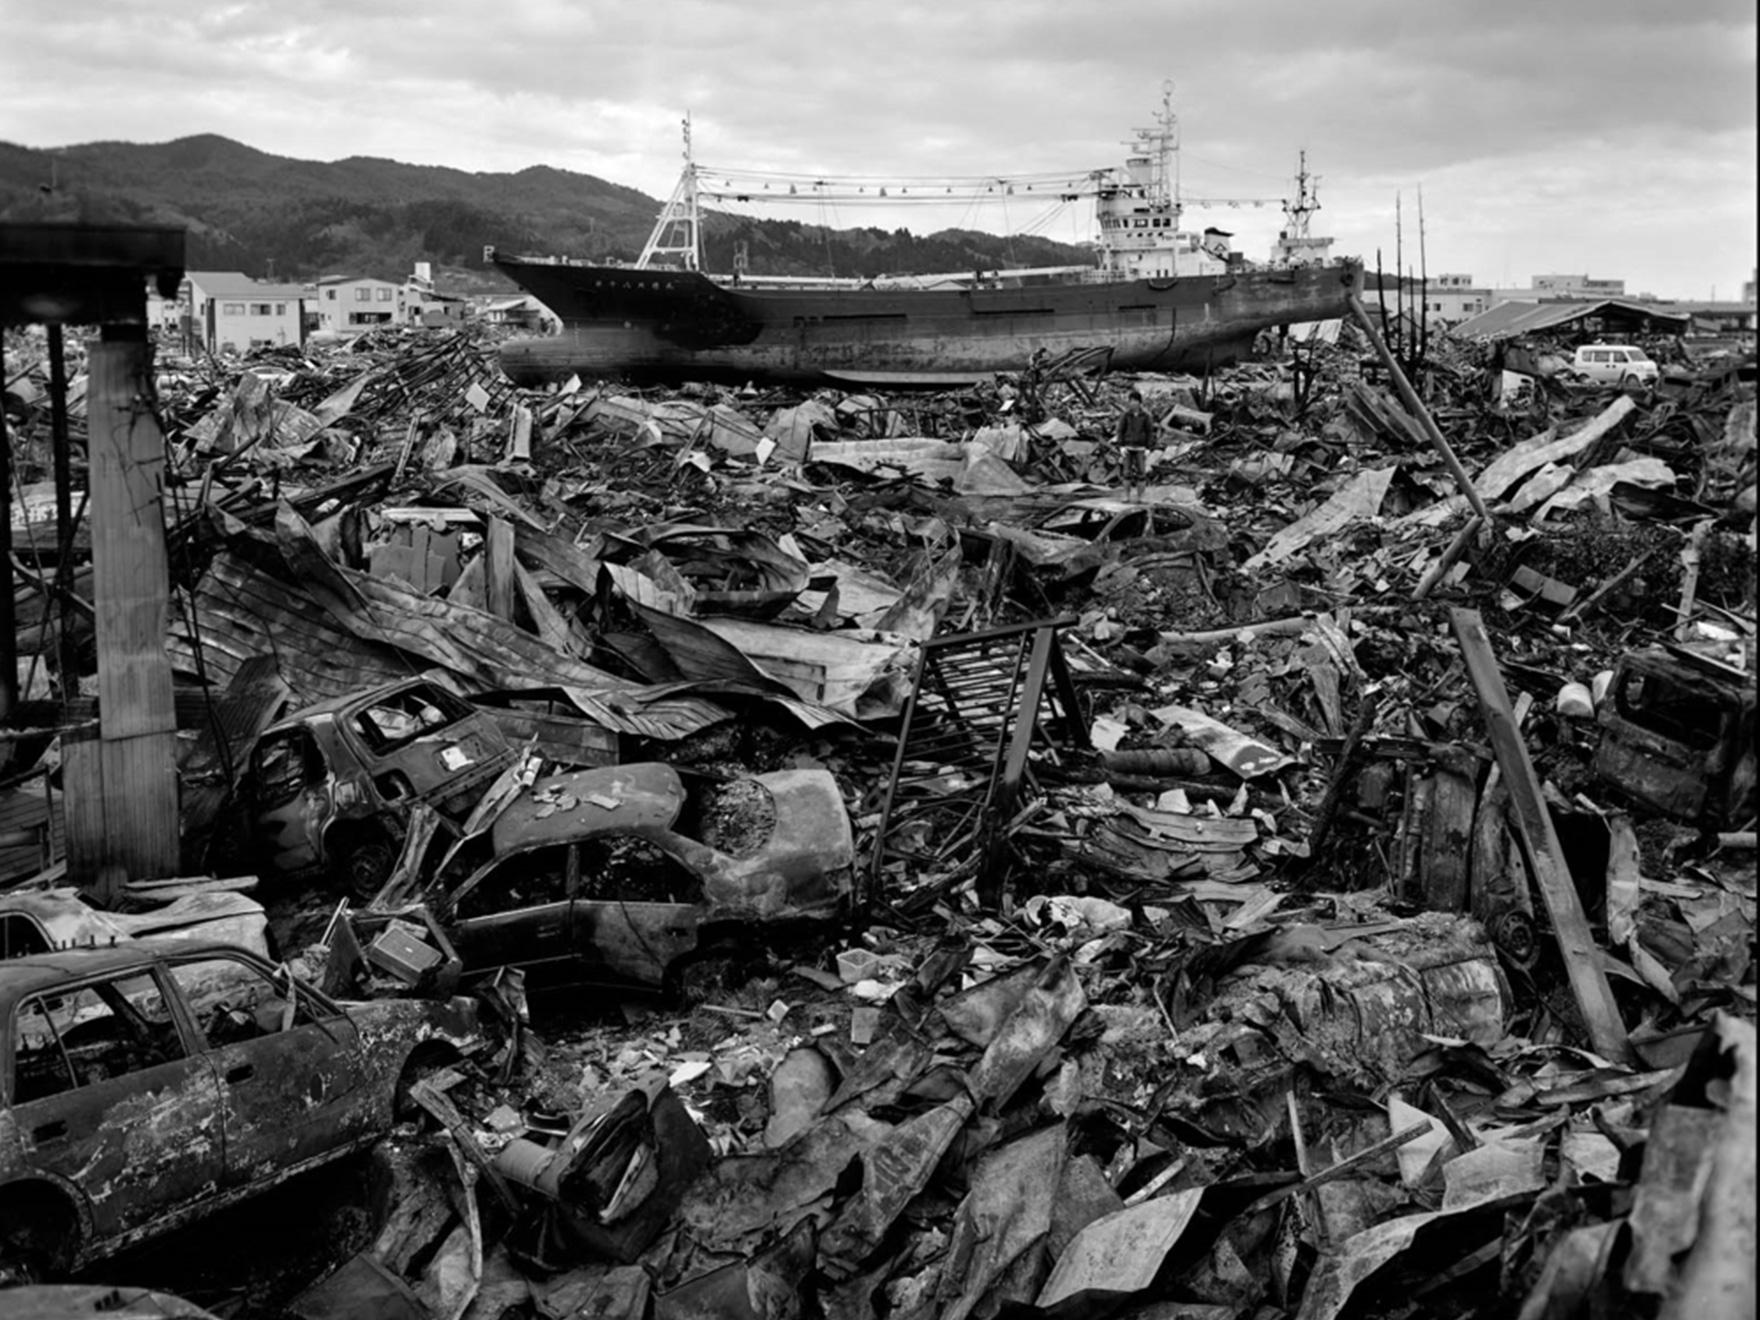 Kōzō Miyoshi, 2011:04:03, Nishiminato, Kesennuma, Miyagi Prefecture from North East Earthquake Disaster Tsunami 2011 Portfolio, 2011